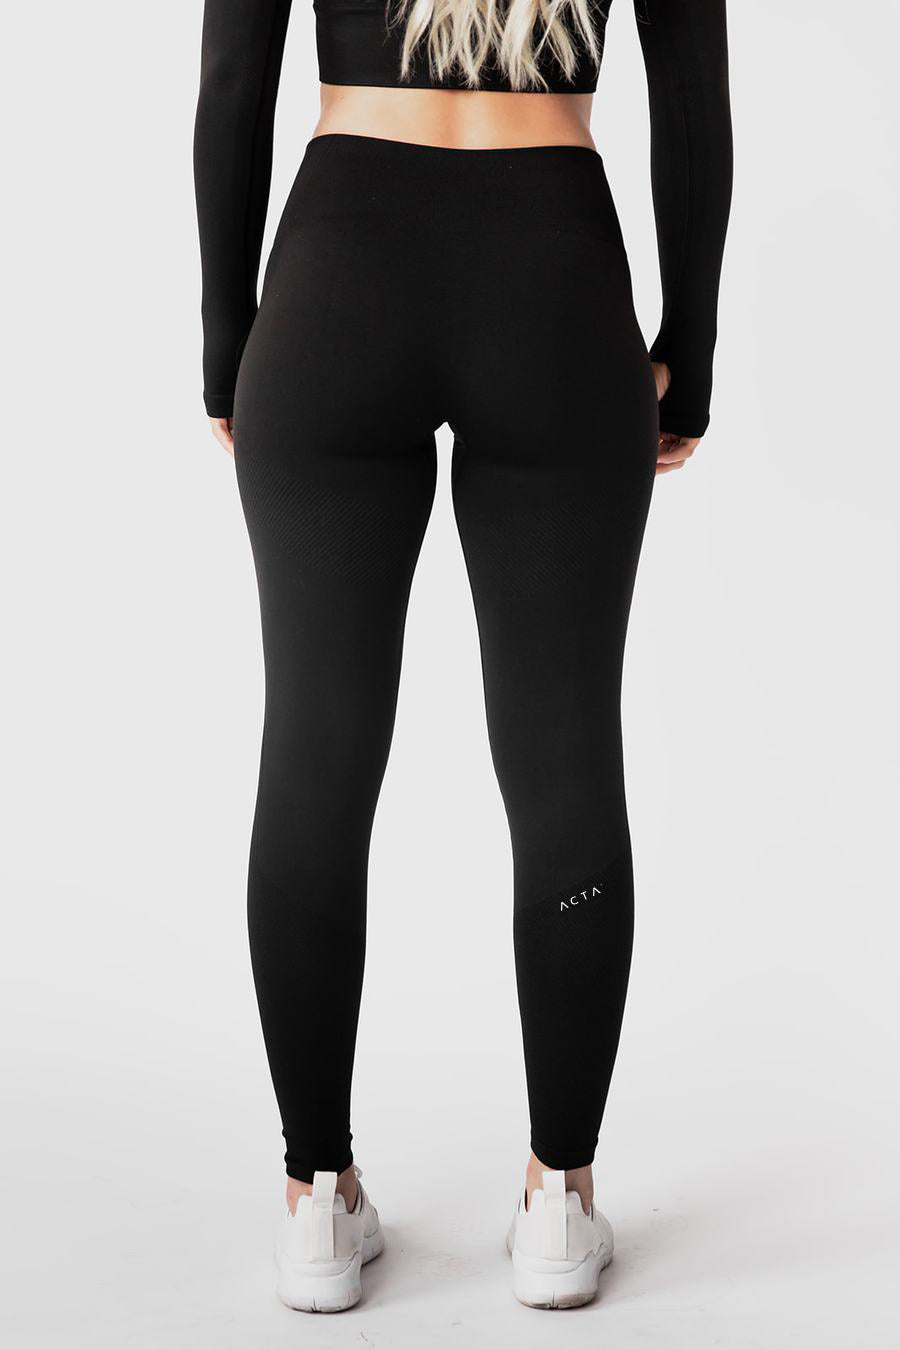 ACTA™ Seamless Legacy Leggings - Black